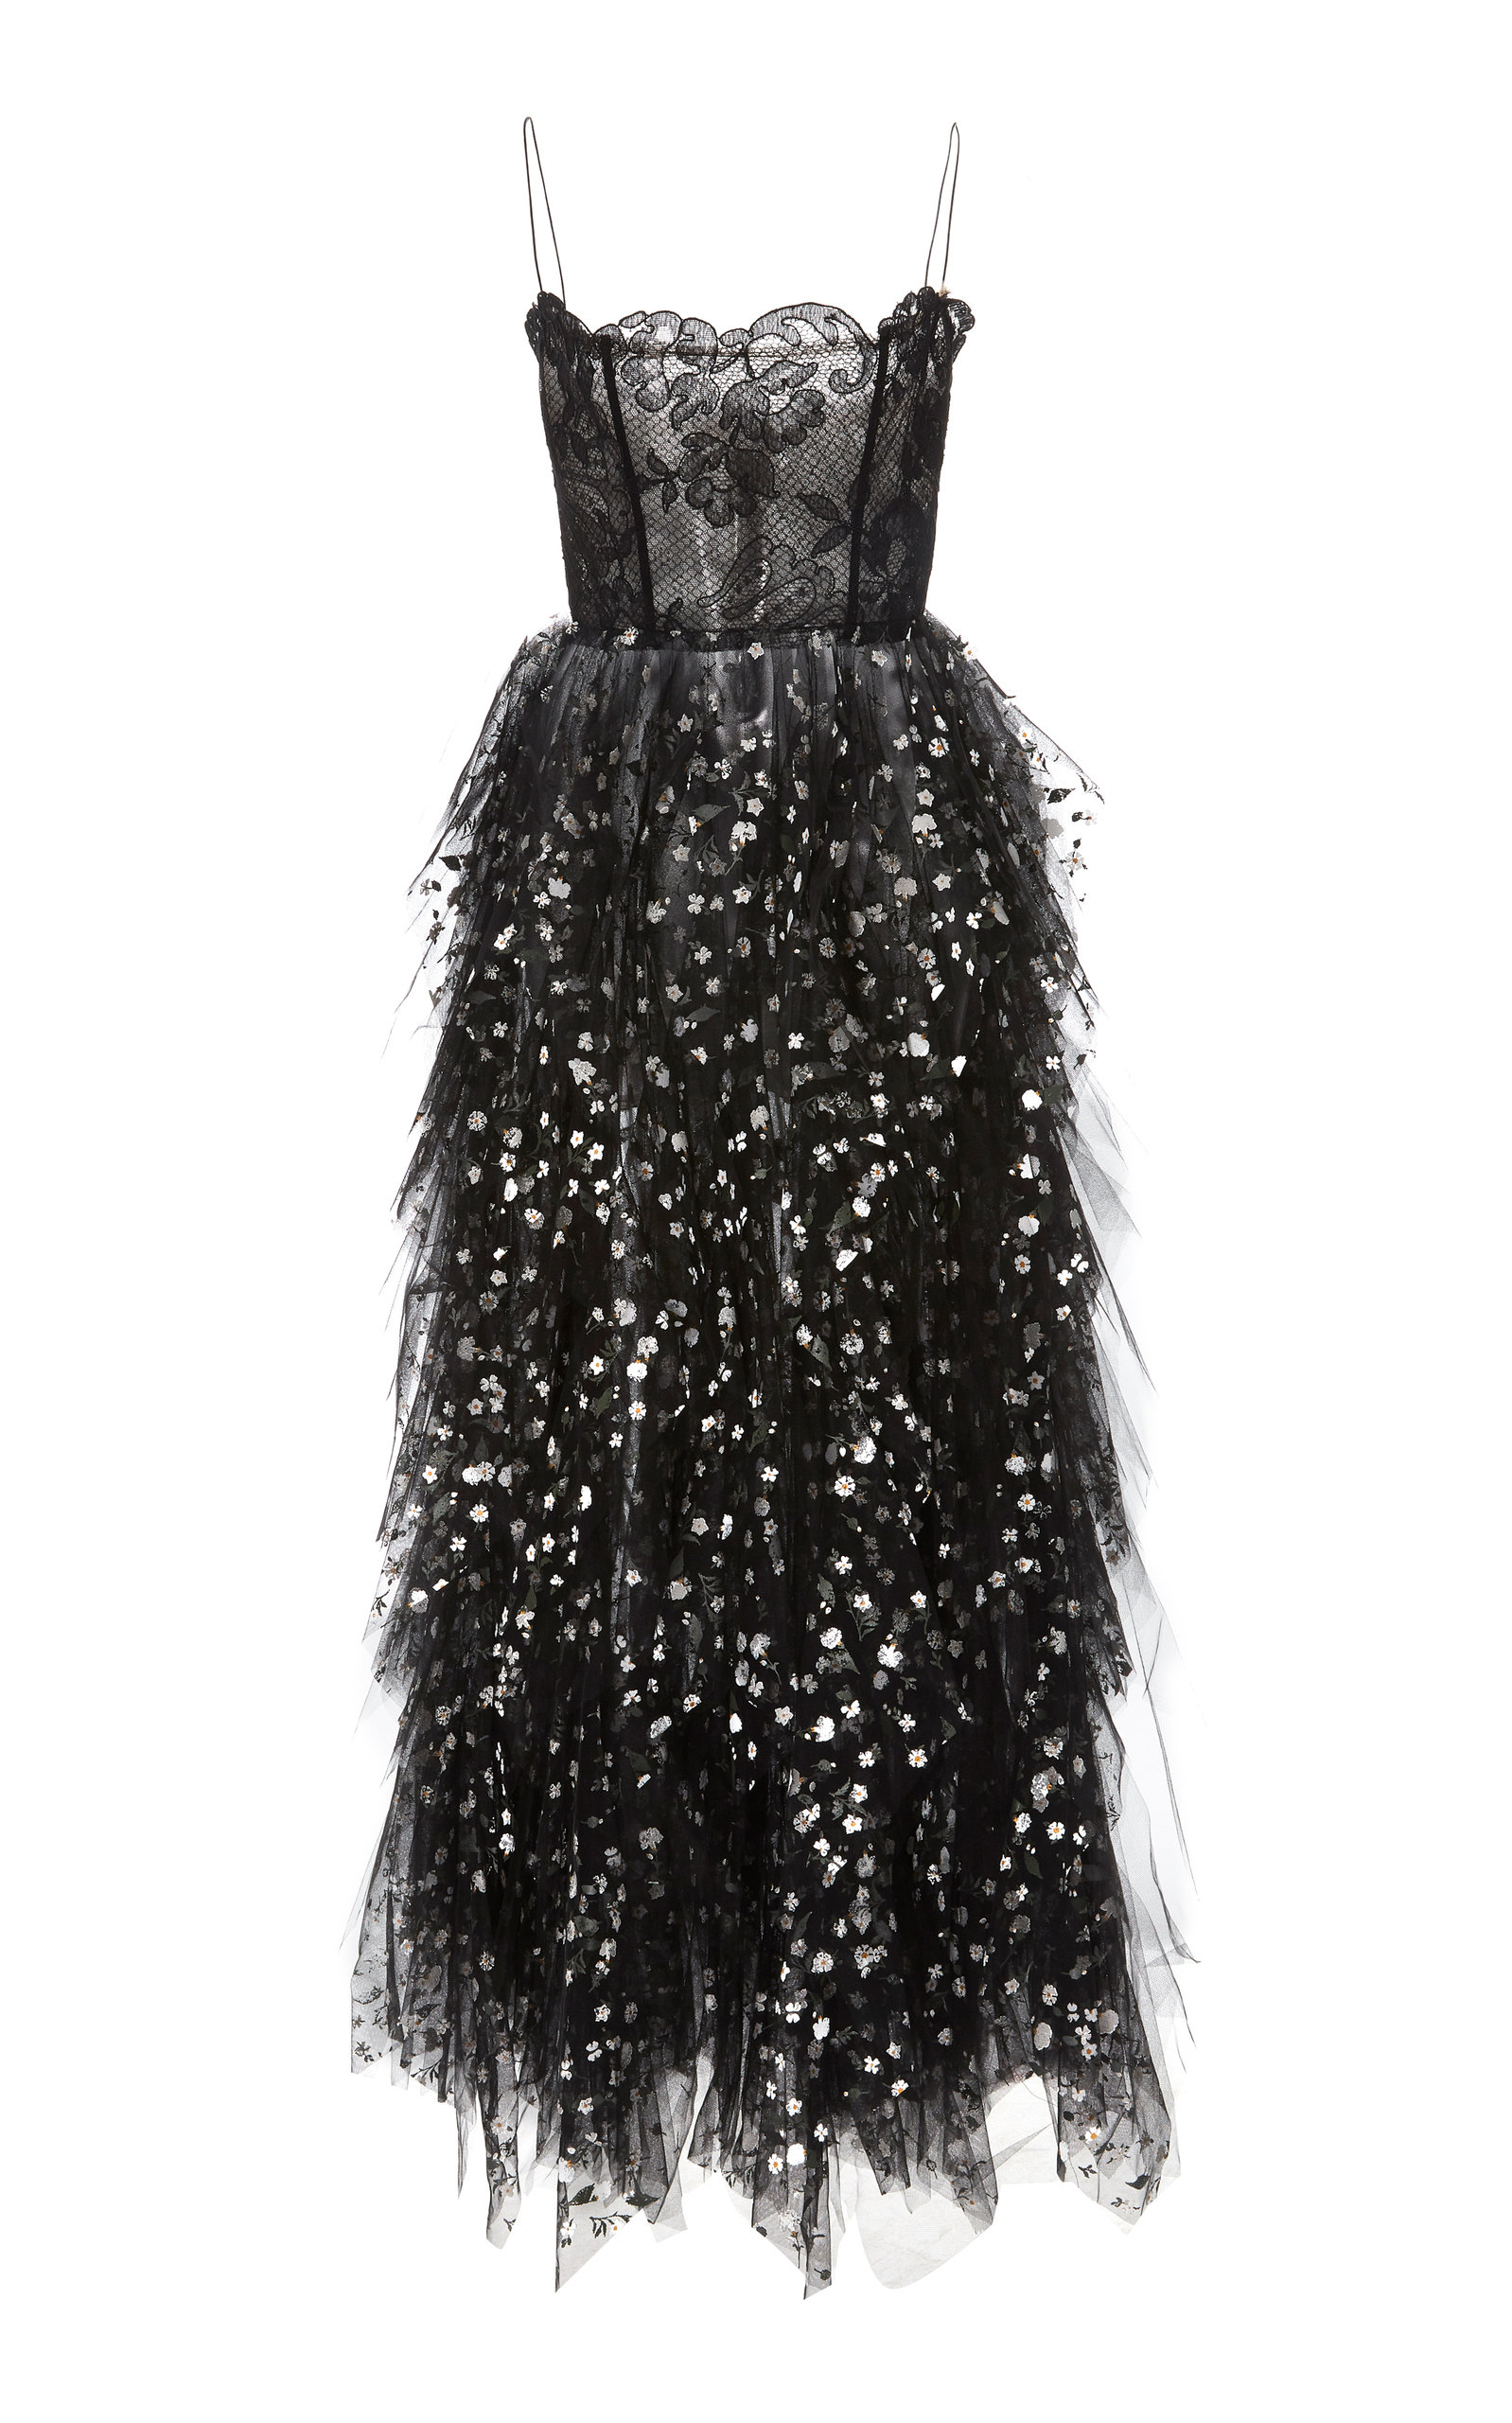 980266dab490a Oscar de la RentaSequin-Embellished Lace and Tulle Midi Dress. CLOSE.  Loading